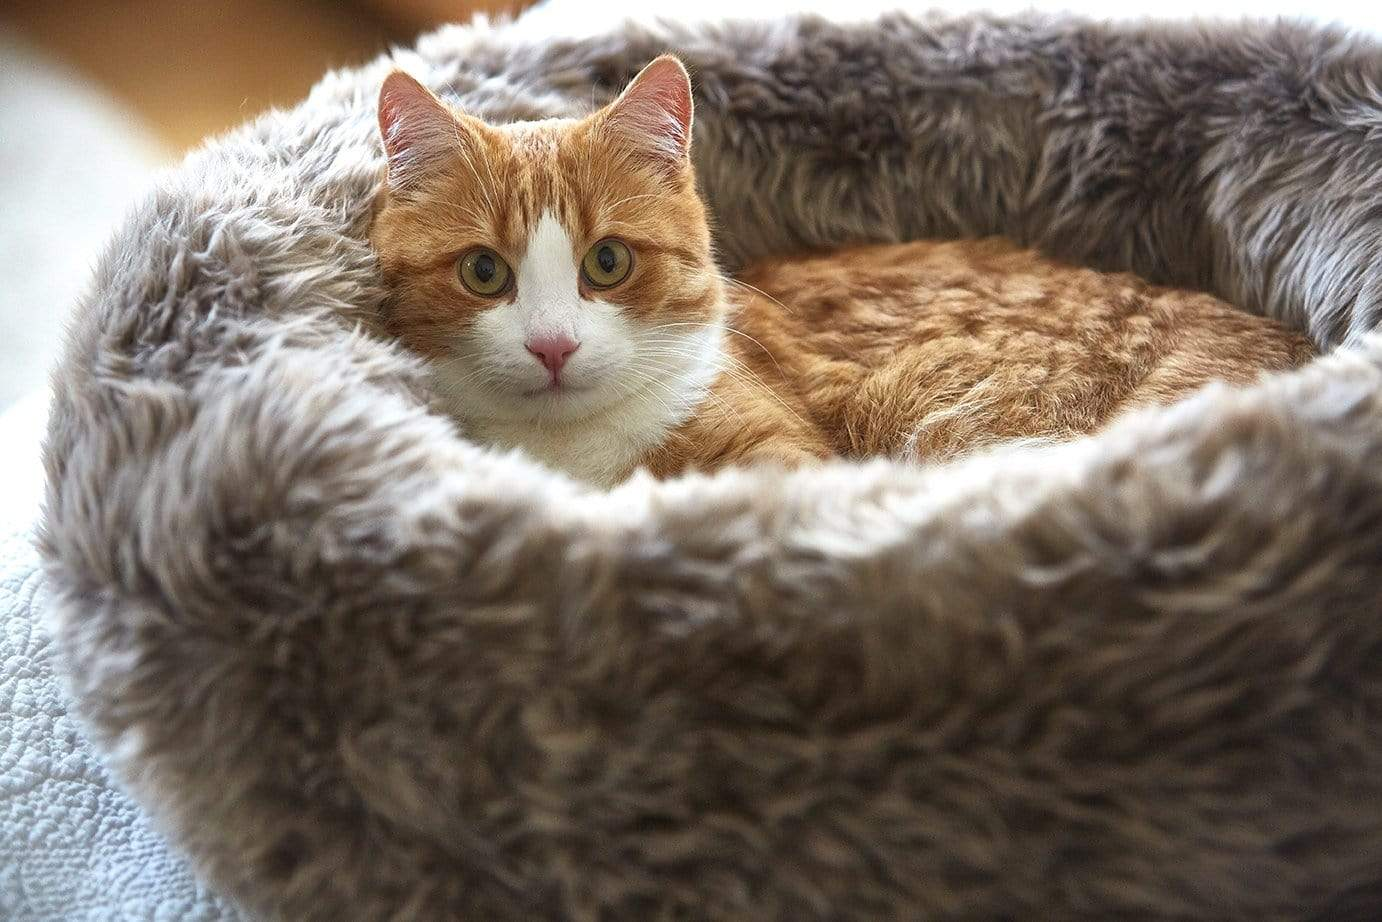 Cat laying in cat bed